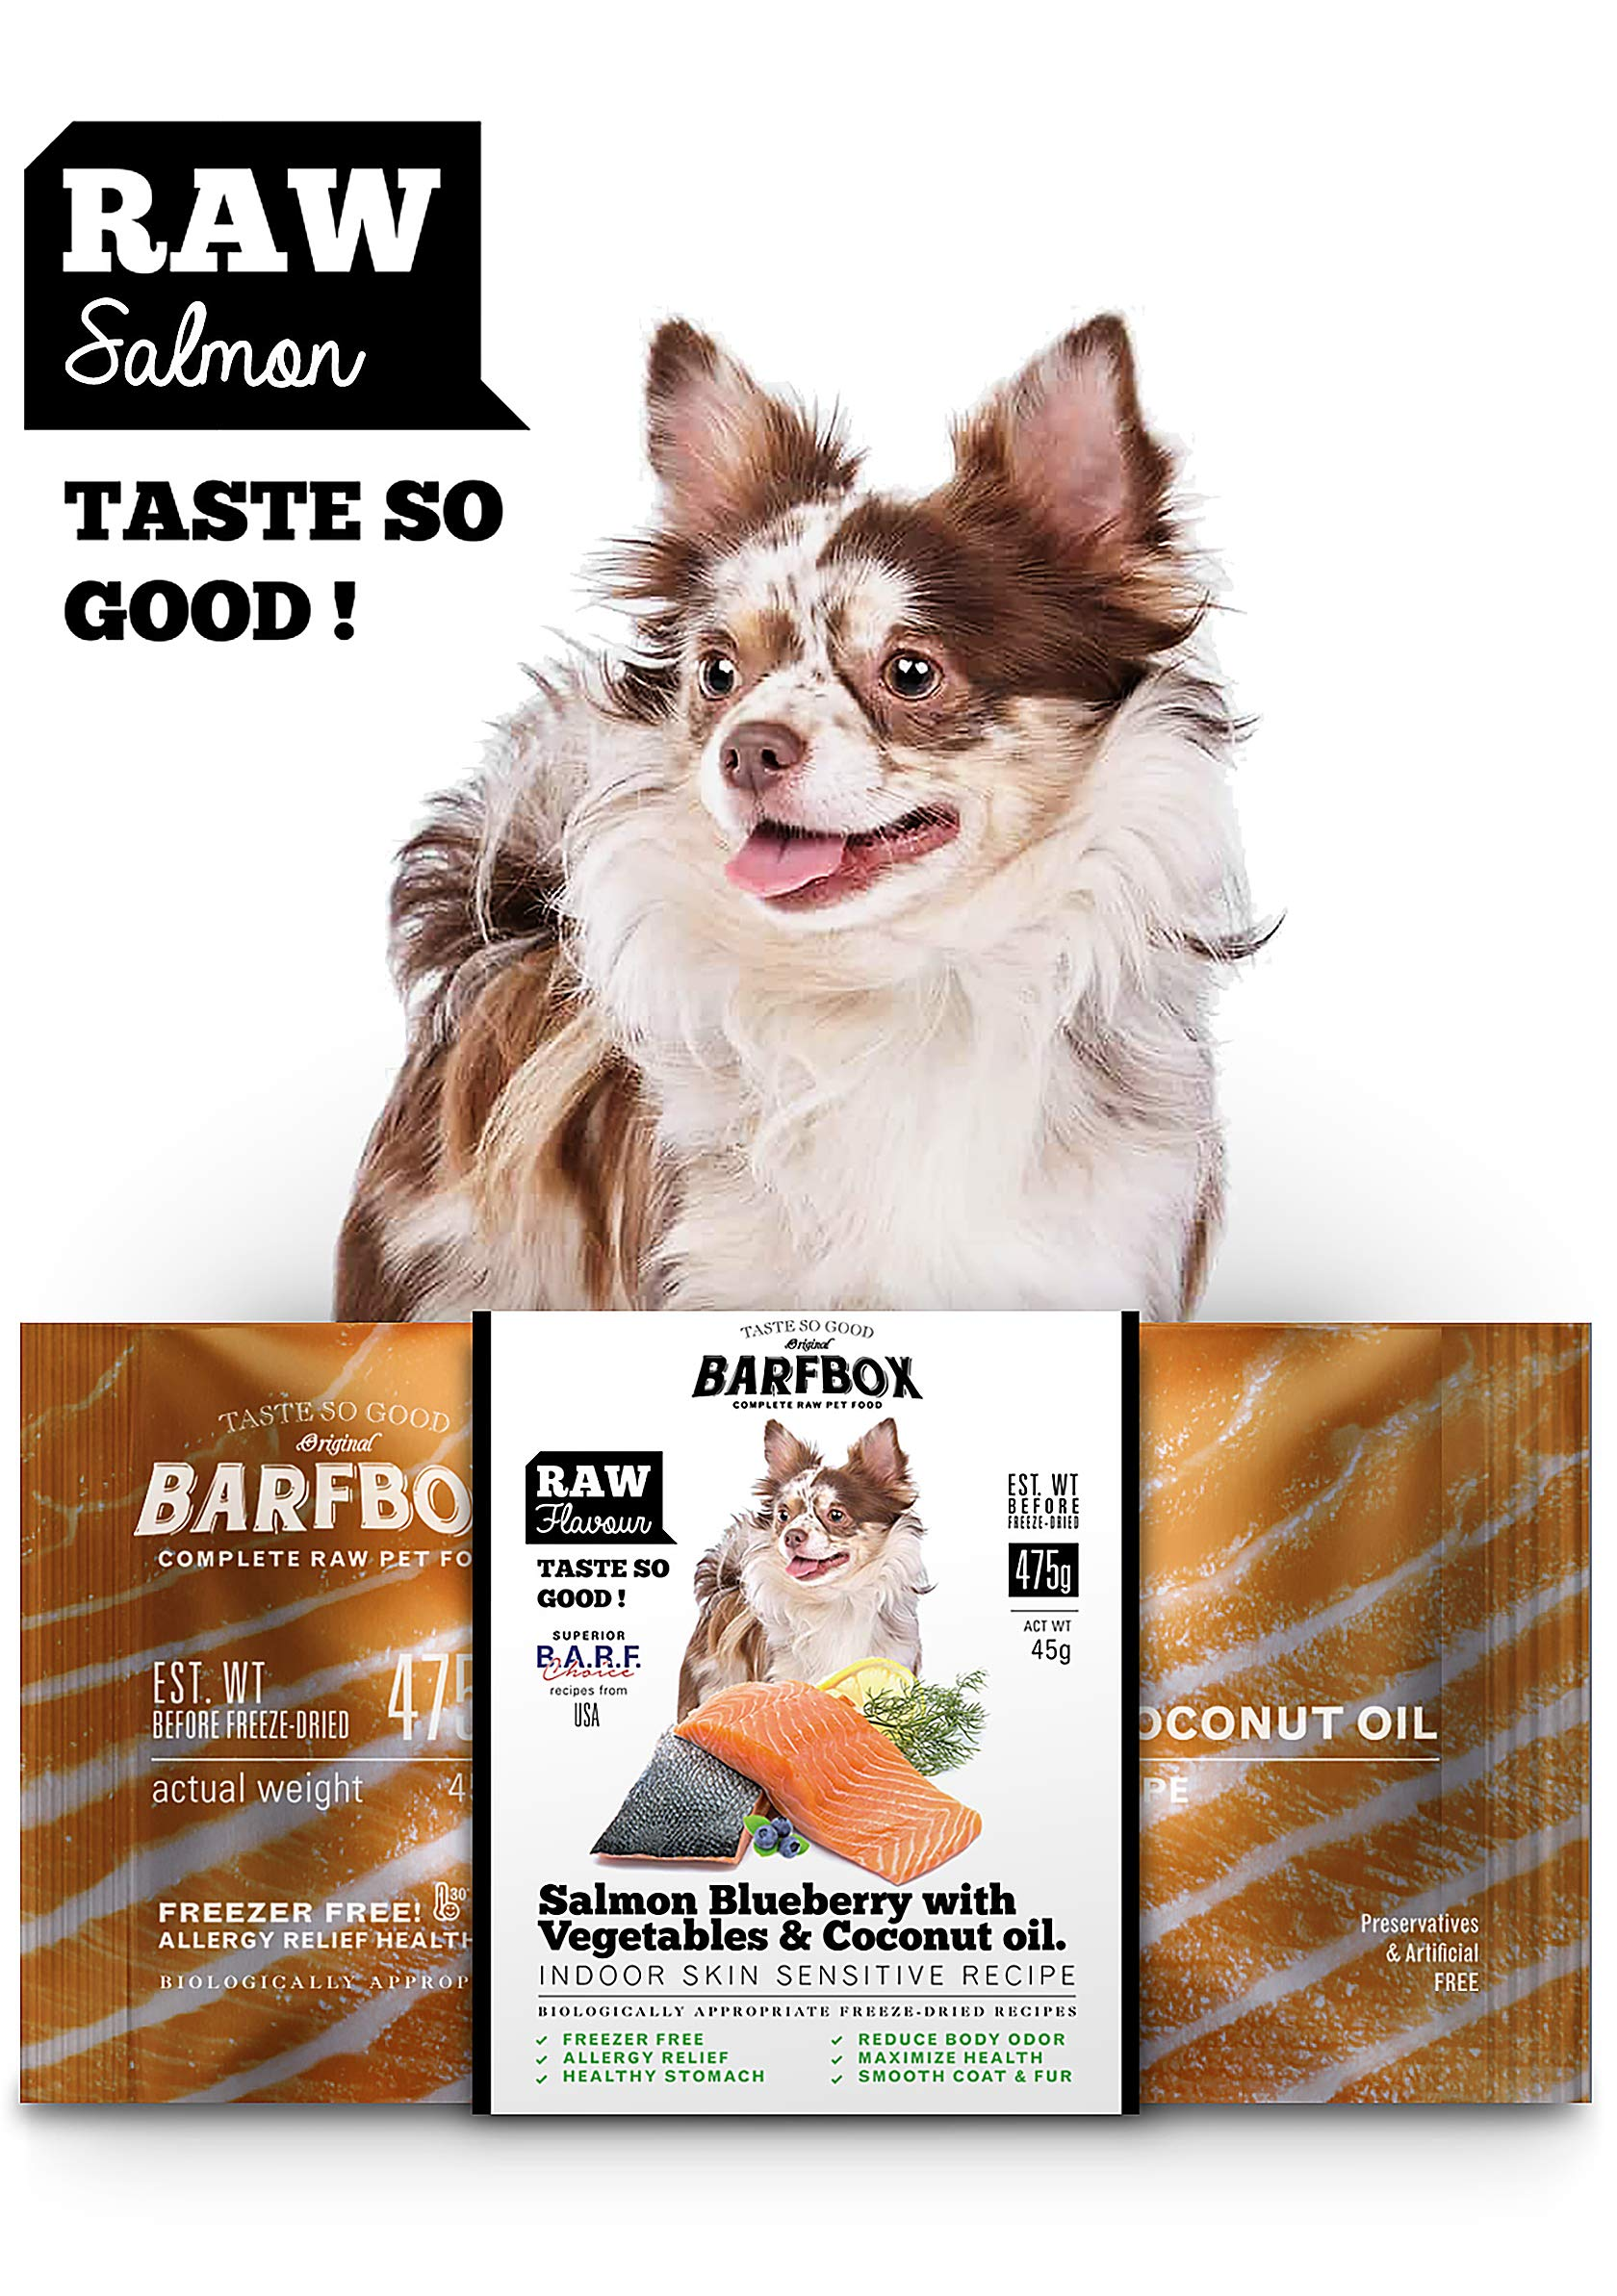 BARFBOX Freeze-Dried Barf Raw Dog Food Complete High Protein, Formula Salmon Blueberry & Mixed Vegetable & Coconut Oil for Indoor Sensitive Skin Recipe & Healthy Short & Long Hair Dog 45 g. by BARFBOX